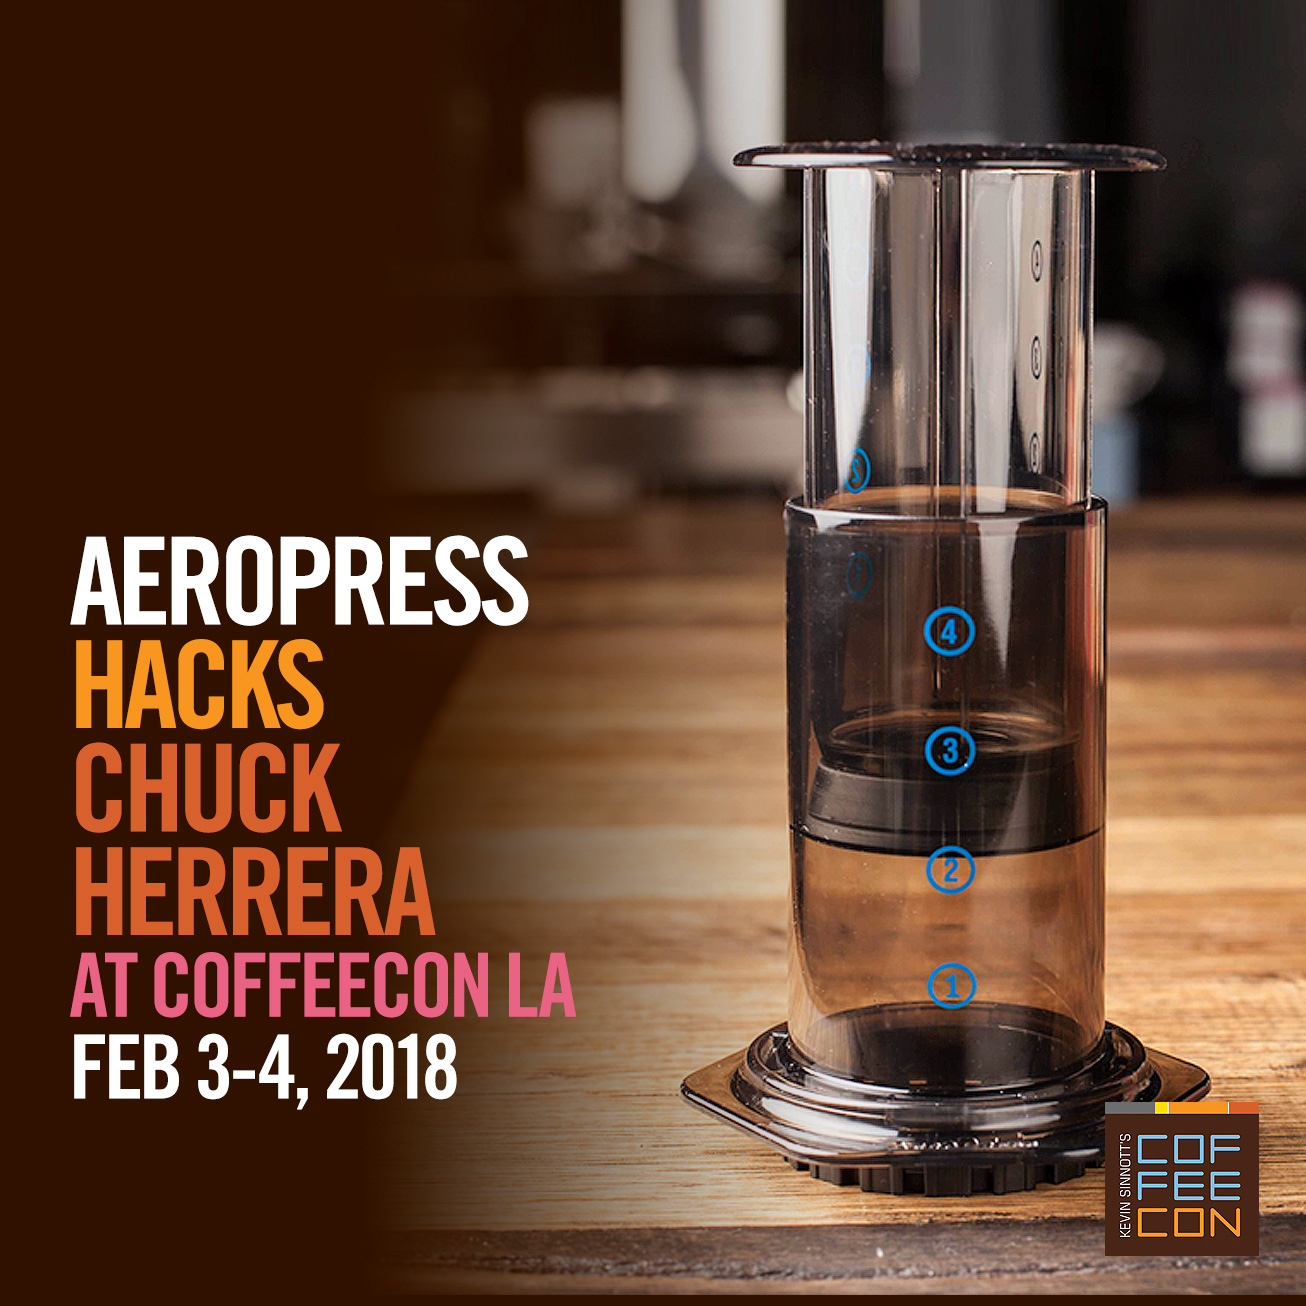 AeroPress Hacks at CoffeeConLA 2018